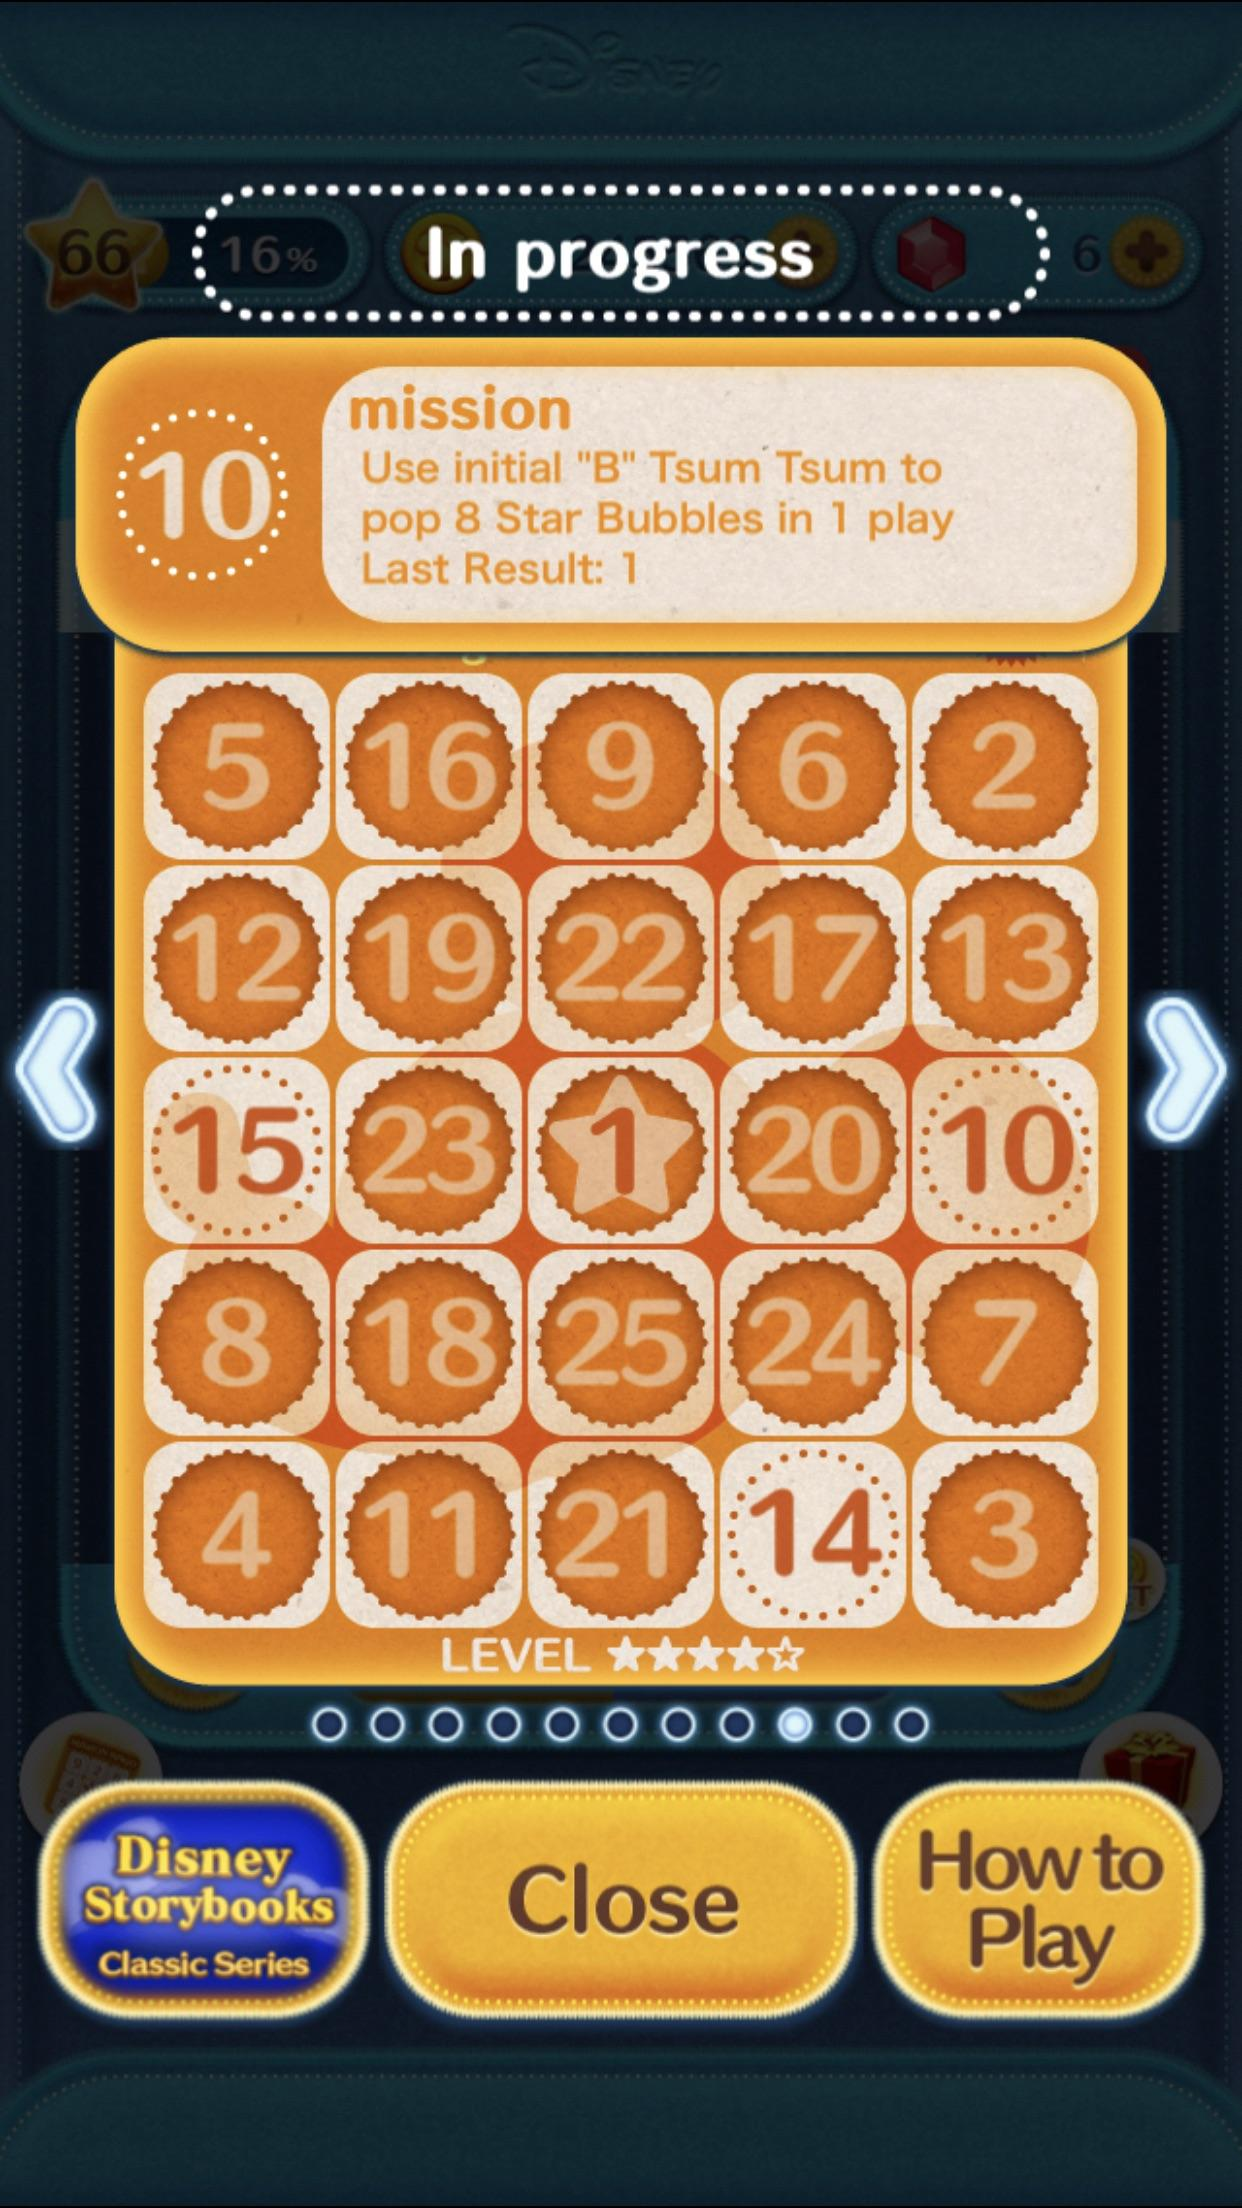 Tsum Tsum Bingo 2 : bingo, Bingo, Mission, Which, Initial, Would, Recommend, Using, Bubbles, Play?, Missions, Skill, Ticket., Can't, Wait!, TsumTsum